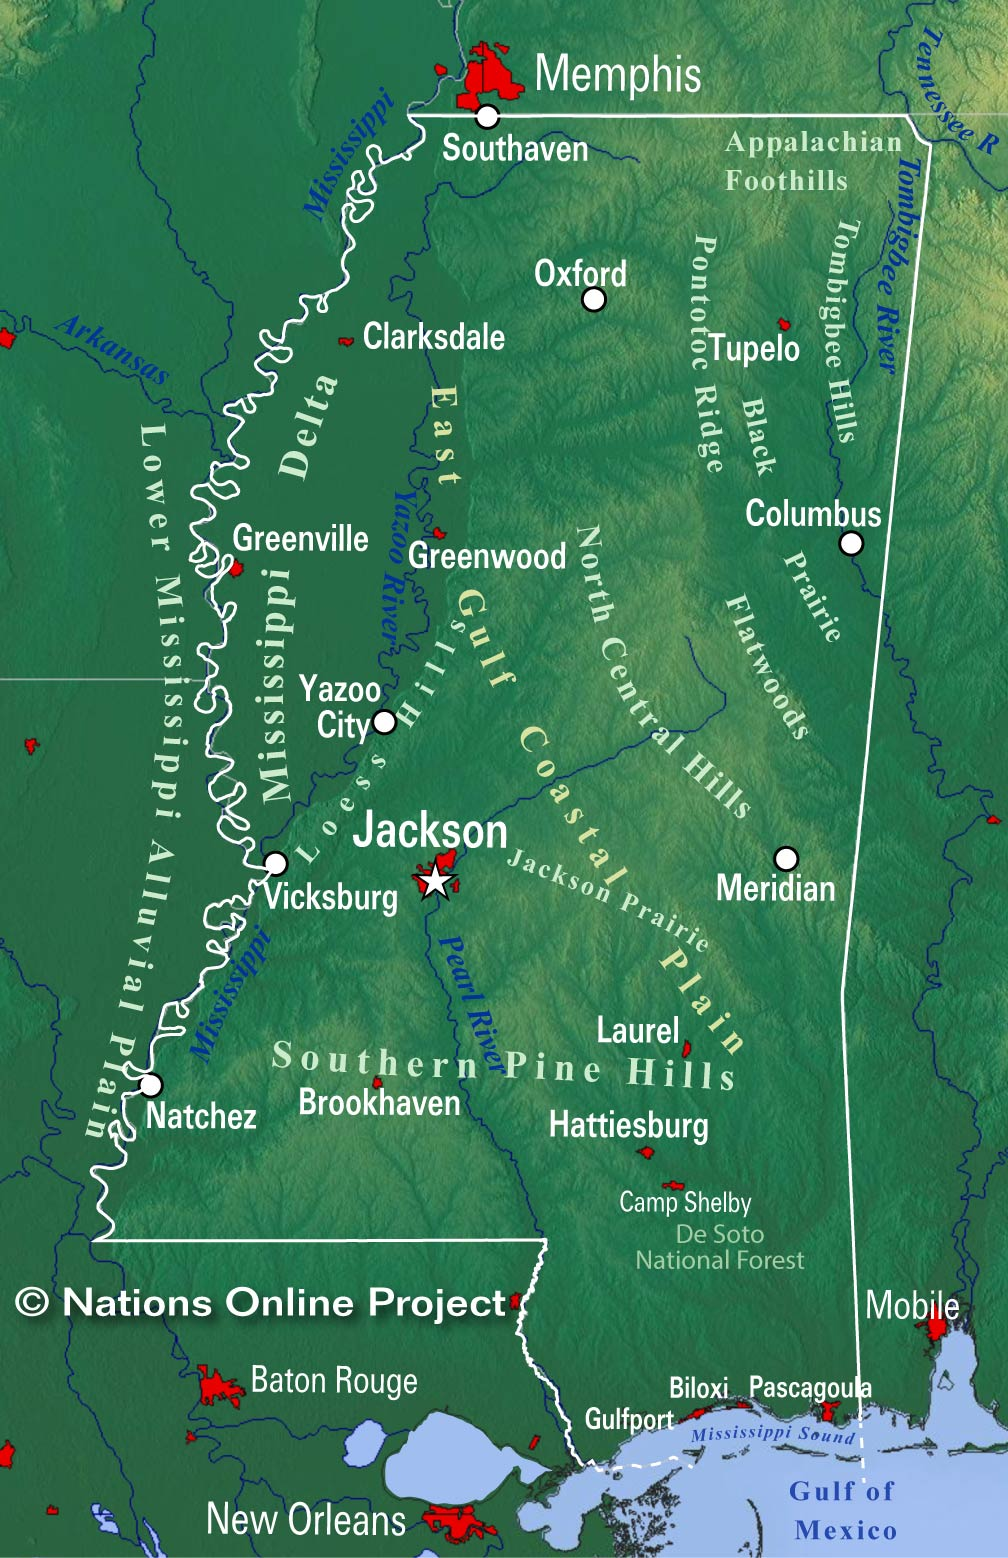 Mississippi Topographic Regions Map